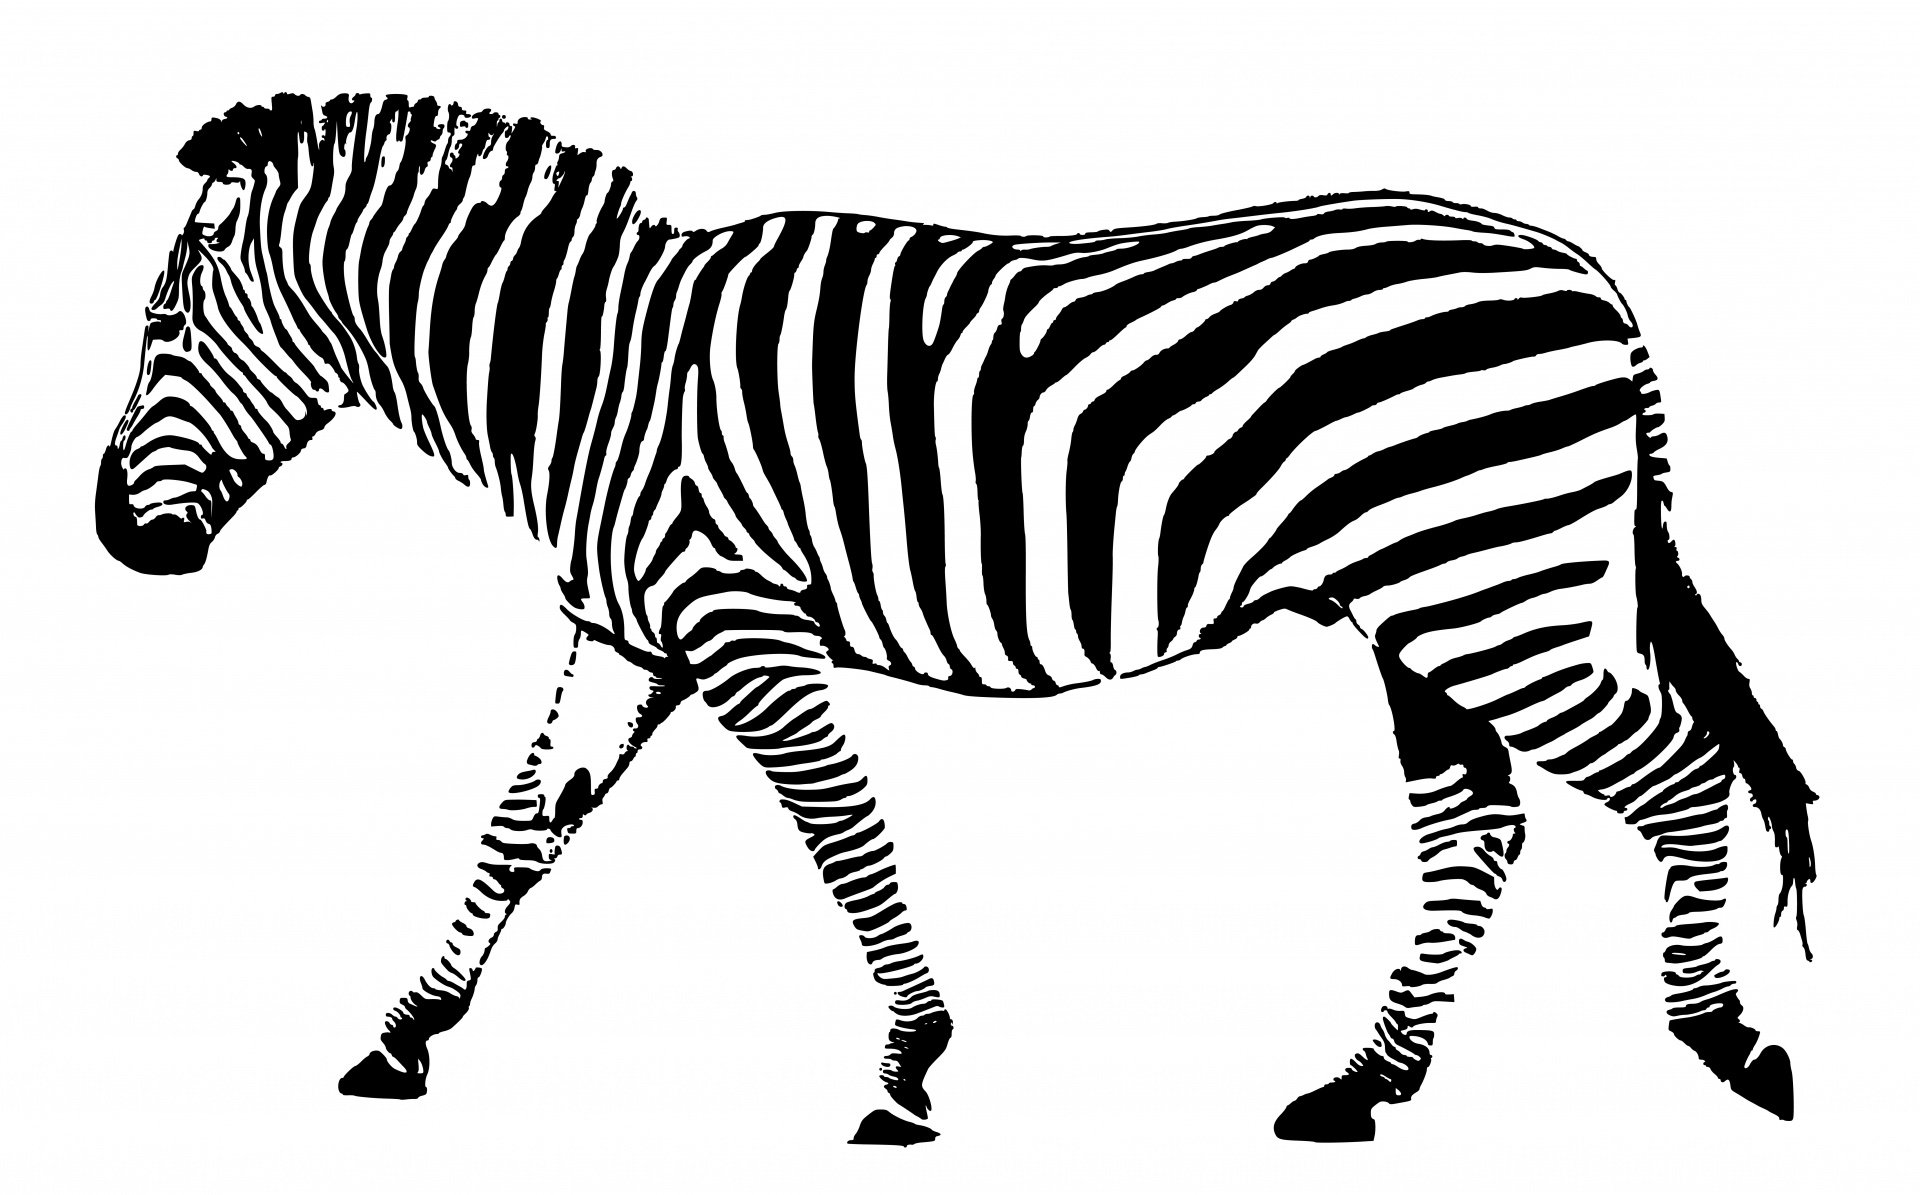 Zebra Black White Stripes Free Stock Photo